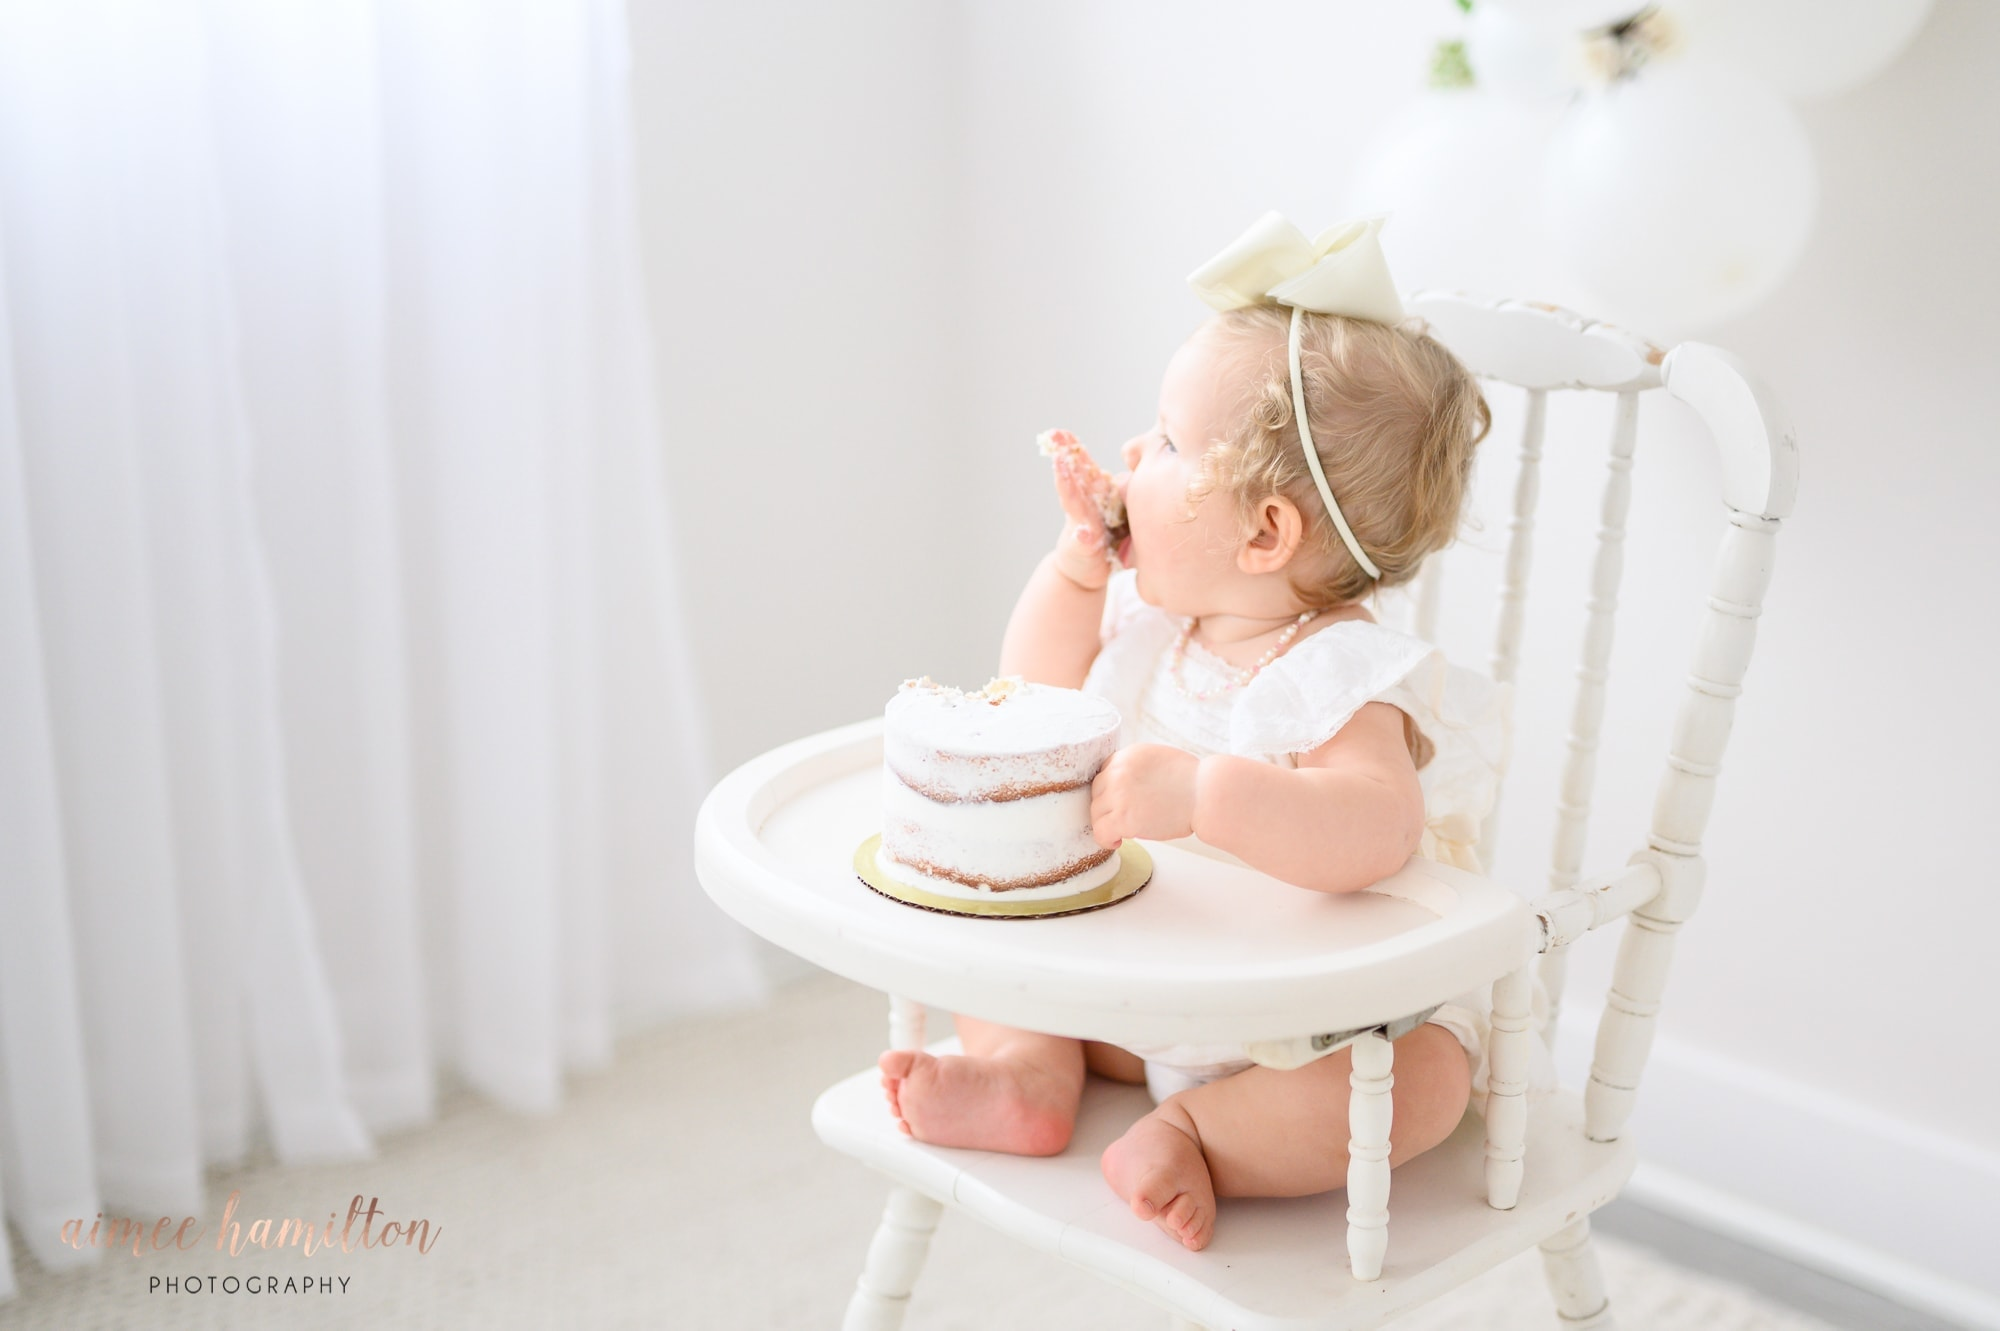 baby eating cake in white high chair